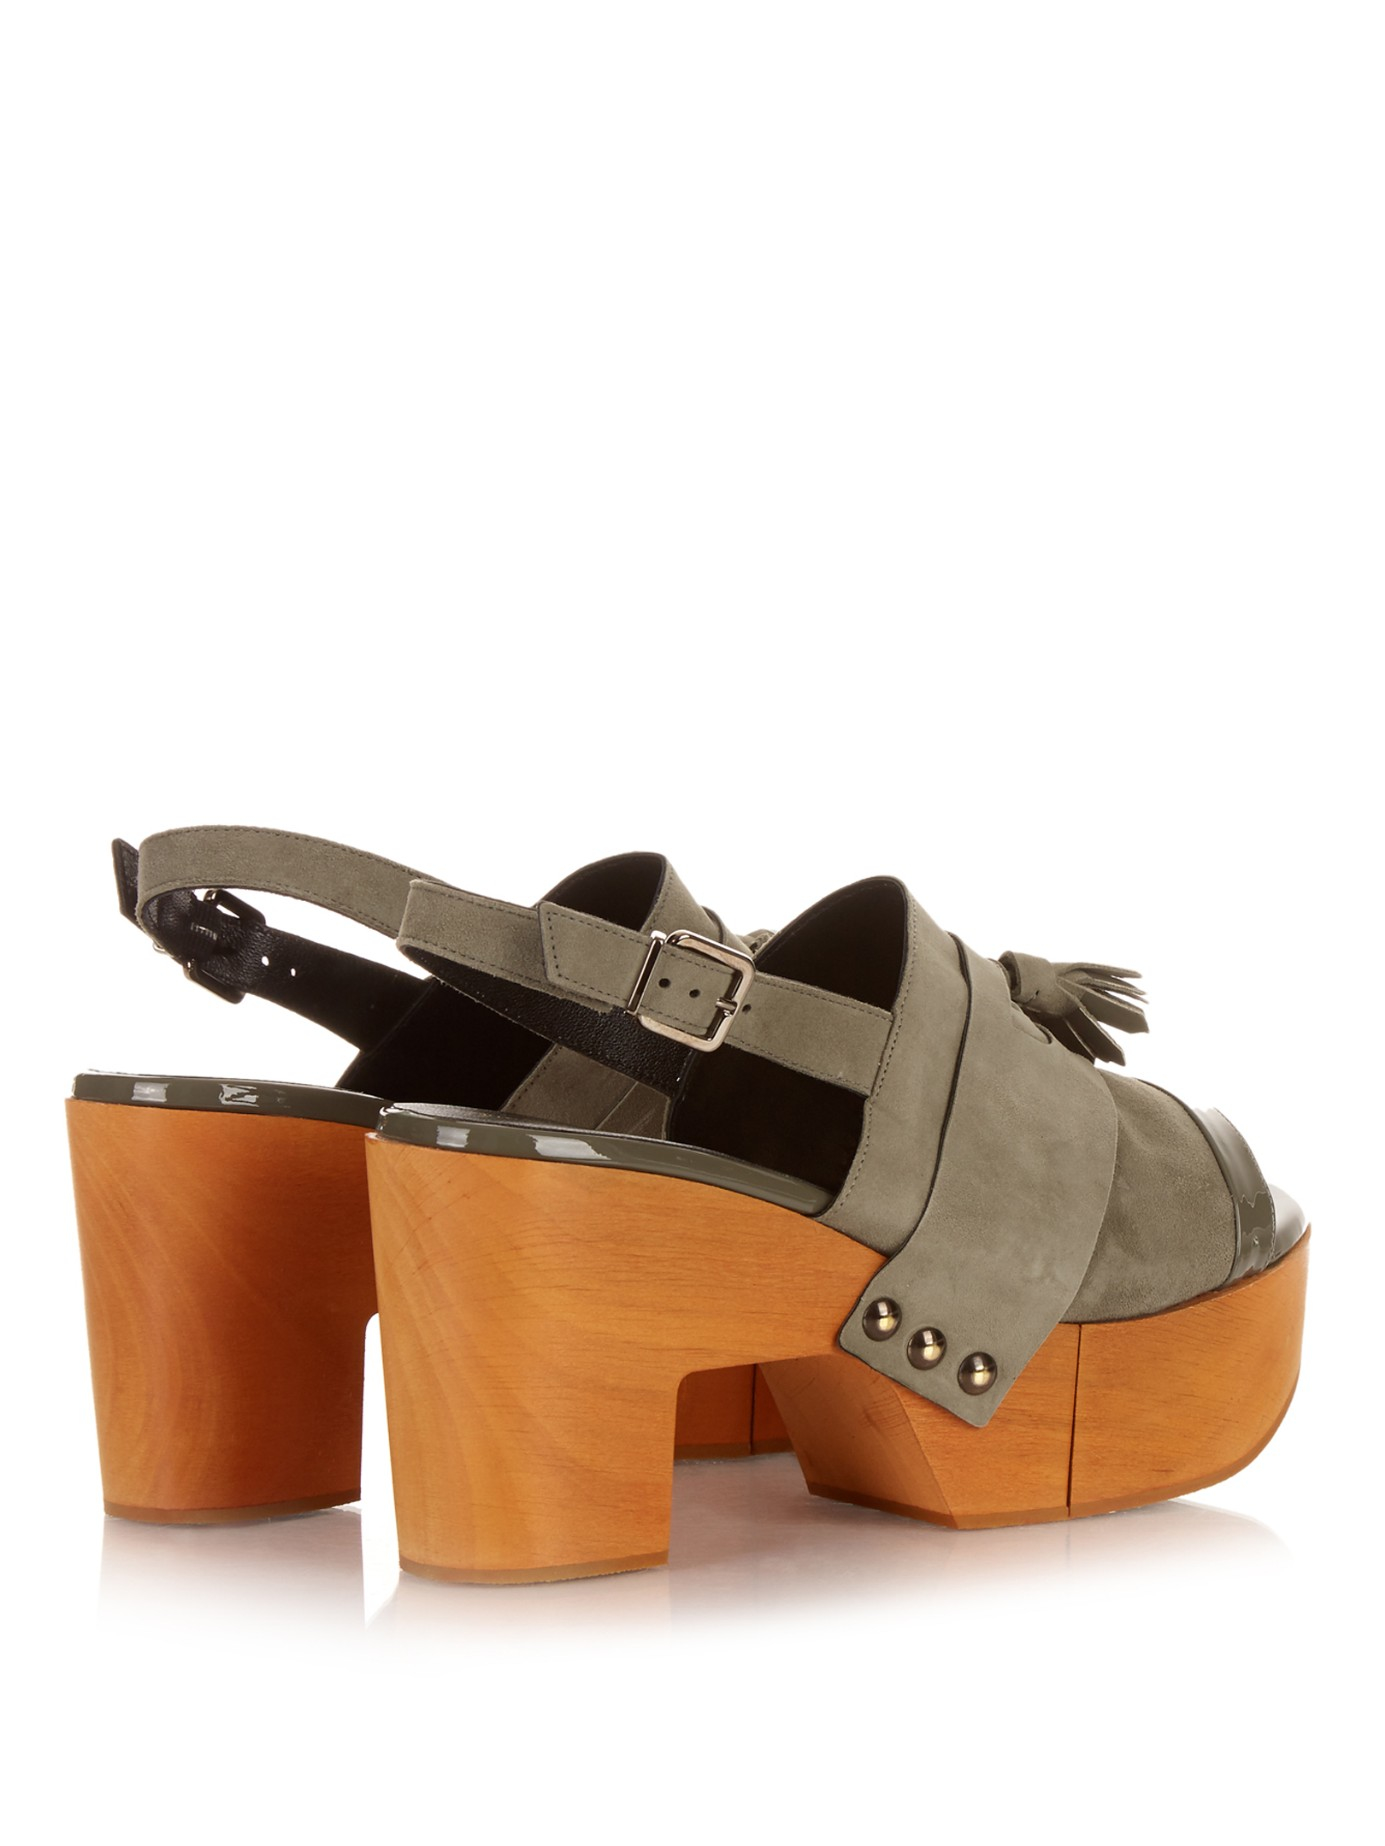 platform sandals - Brown Robert Clergerie EAnipcFd